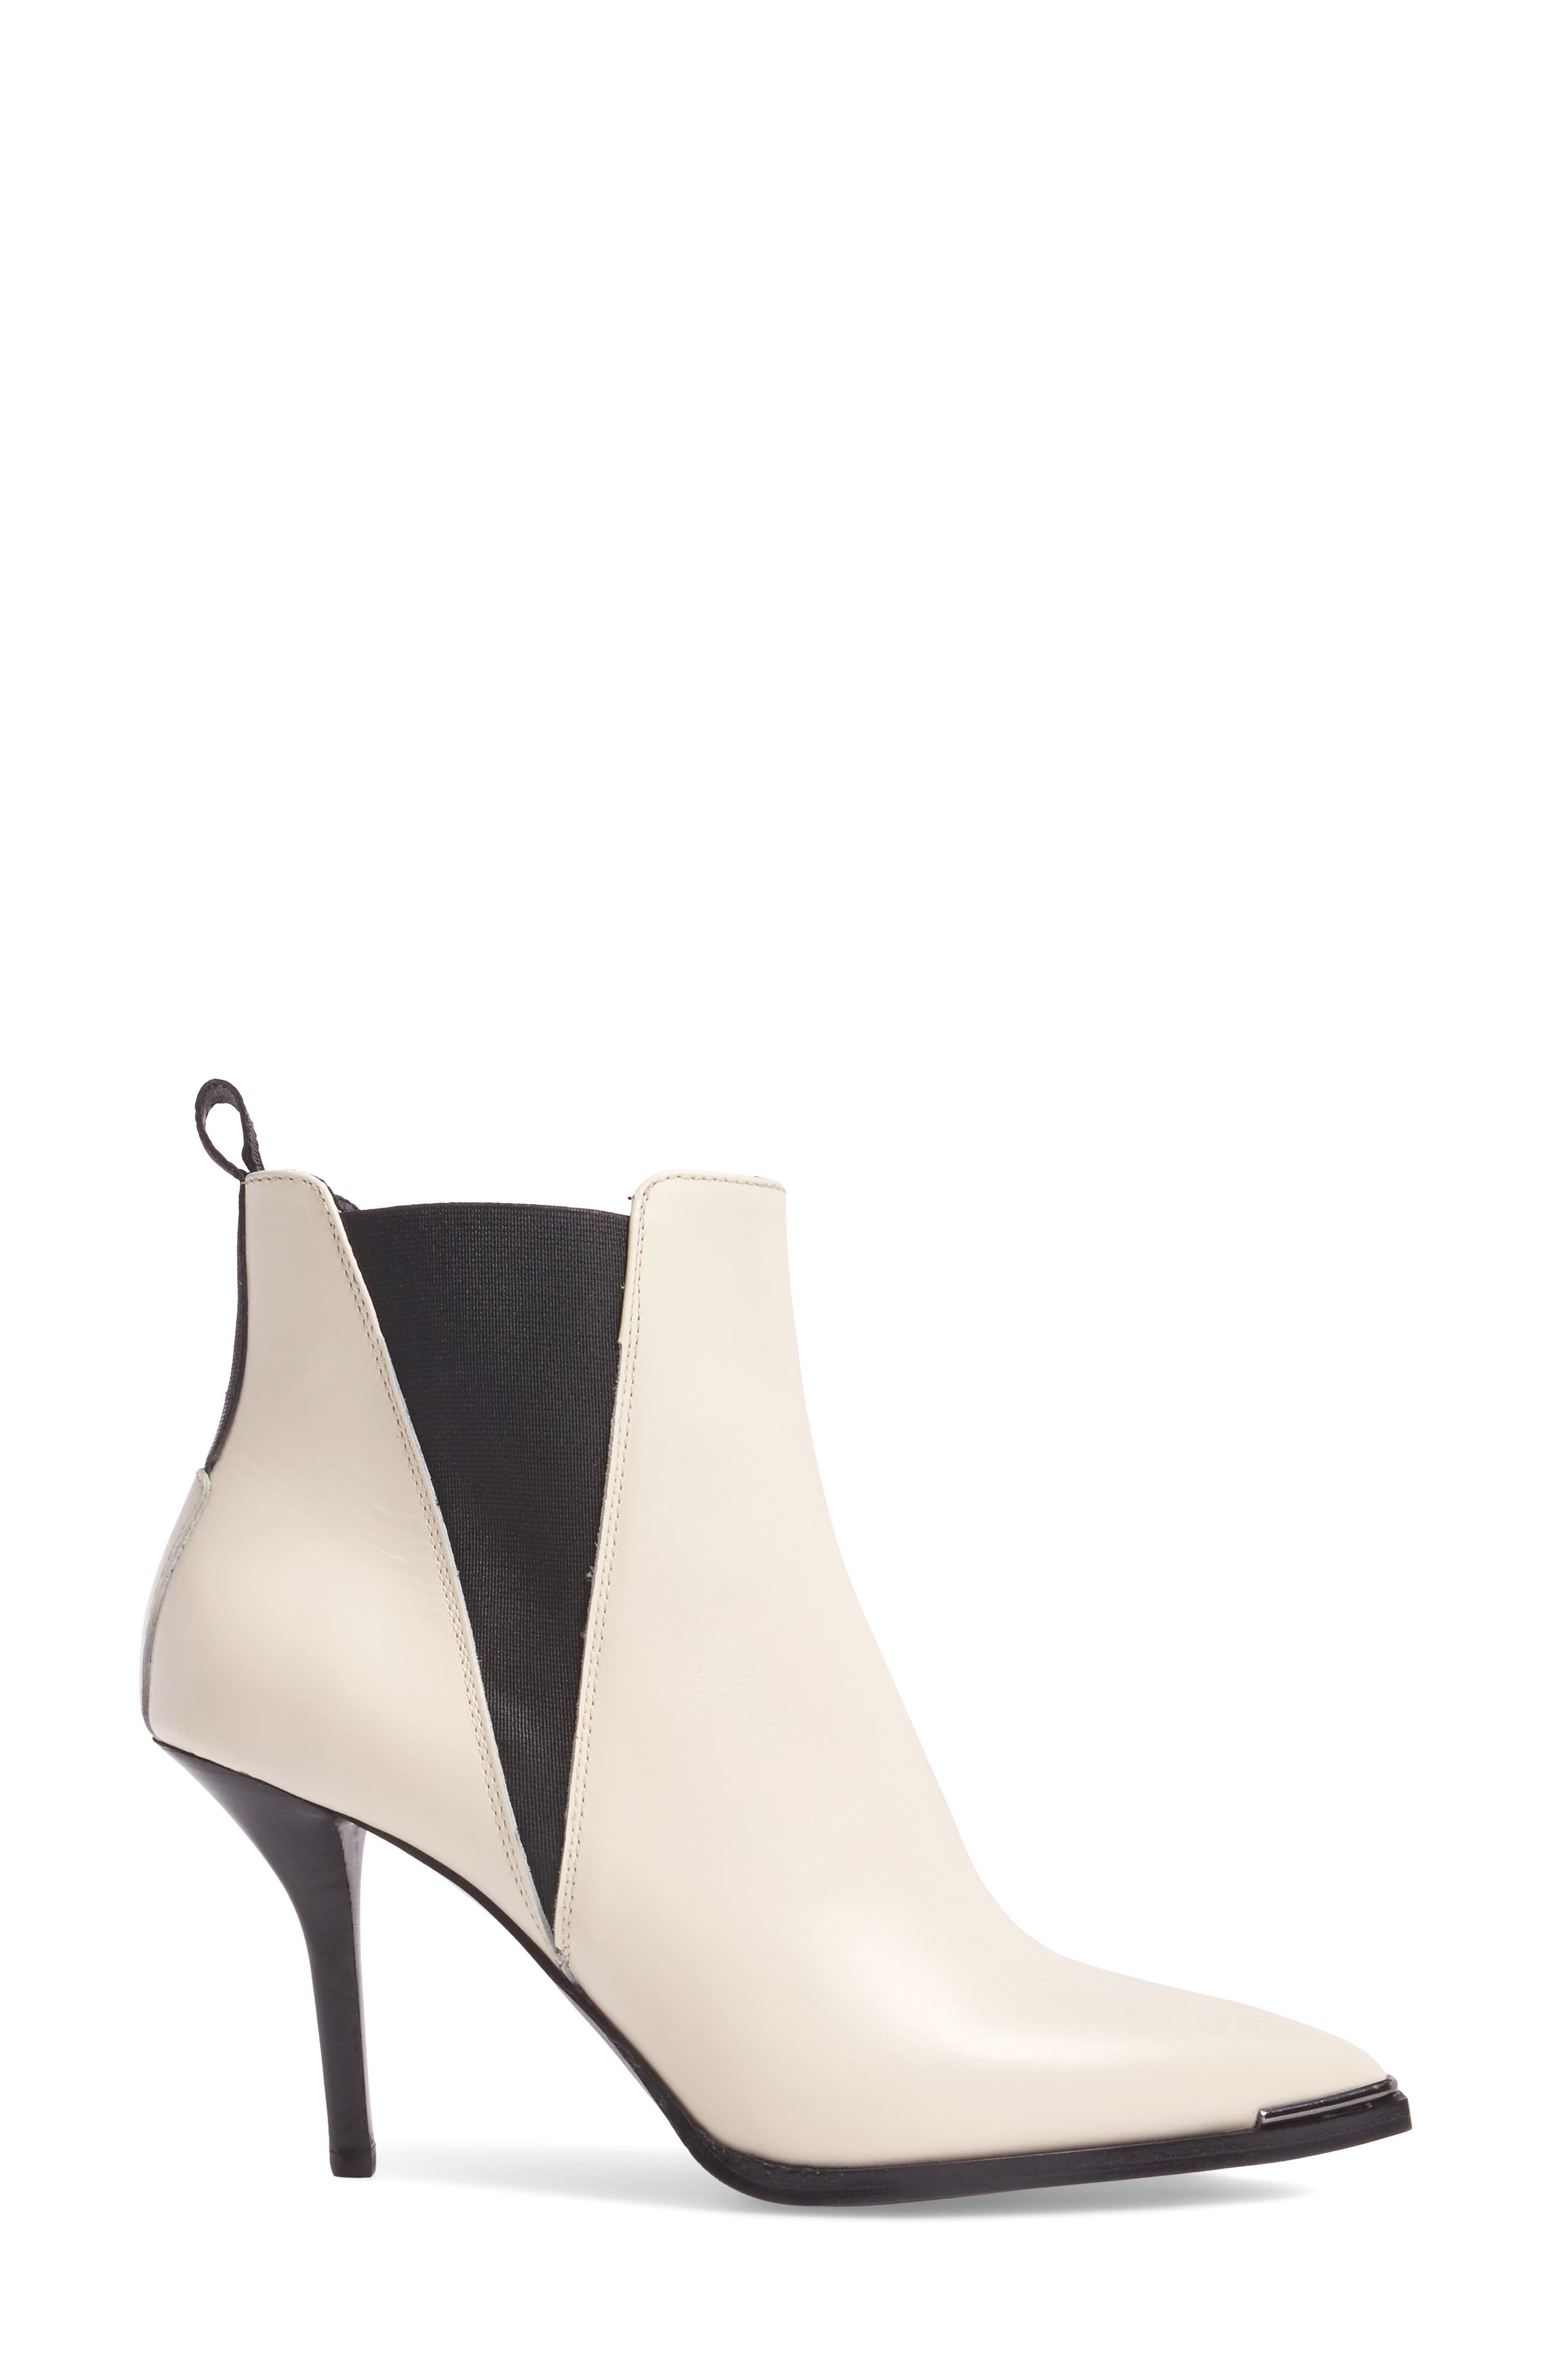 Jemma Pointy Toe Bootie,                             Alternate thumbnail 3, color,                             Off White